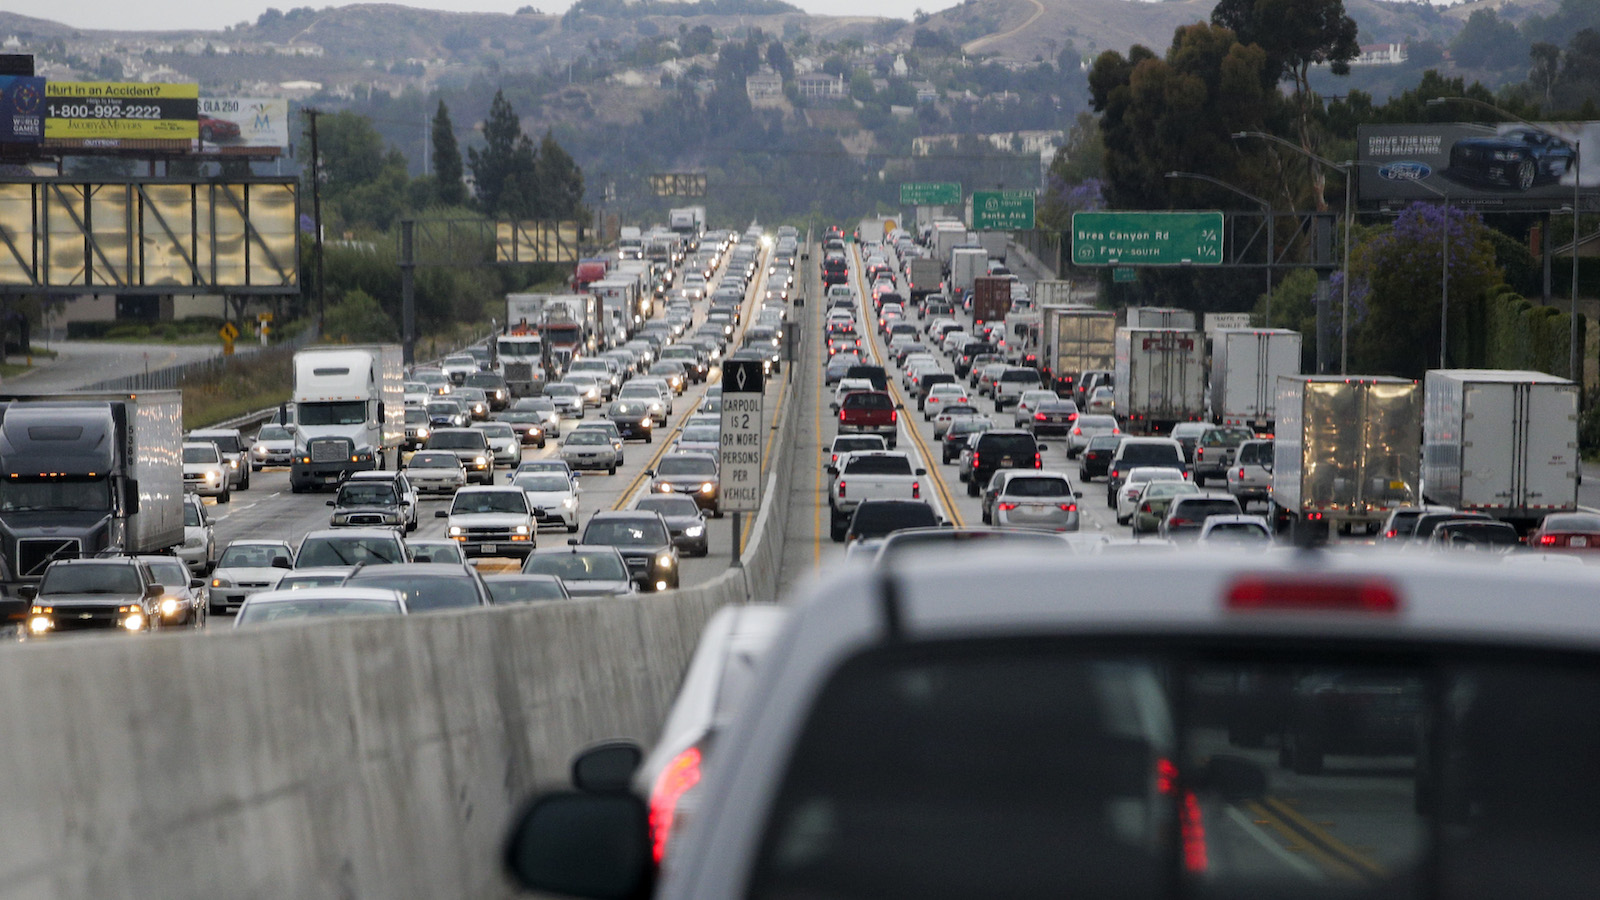 In this Friday, May 22, 2015 photo, traffic moves along the 60 Freeway during rush hour in Rowland Heights, Calif. Traffic congestion will become significantly worse and more widespread without big changes in how people and products get around. The possible solutions are many, but none is easy or cheap. (AP Photo/Jae C. Hong)